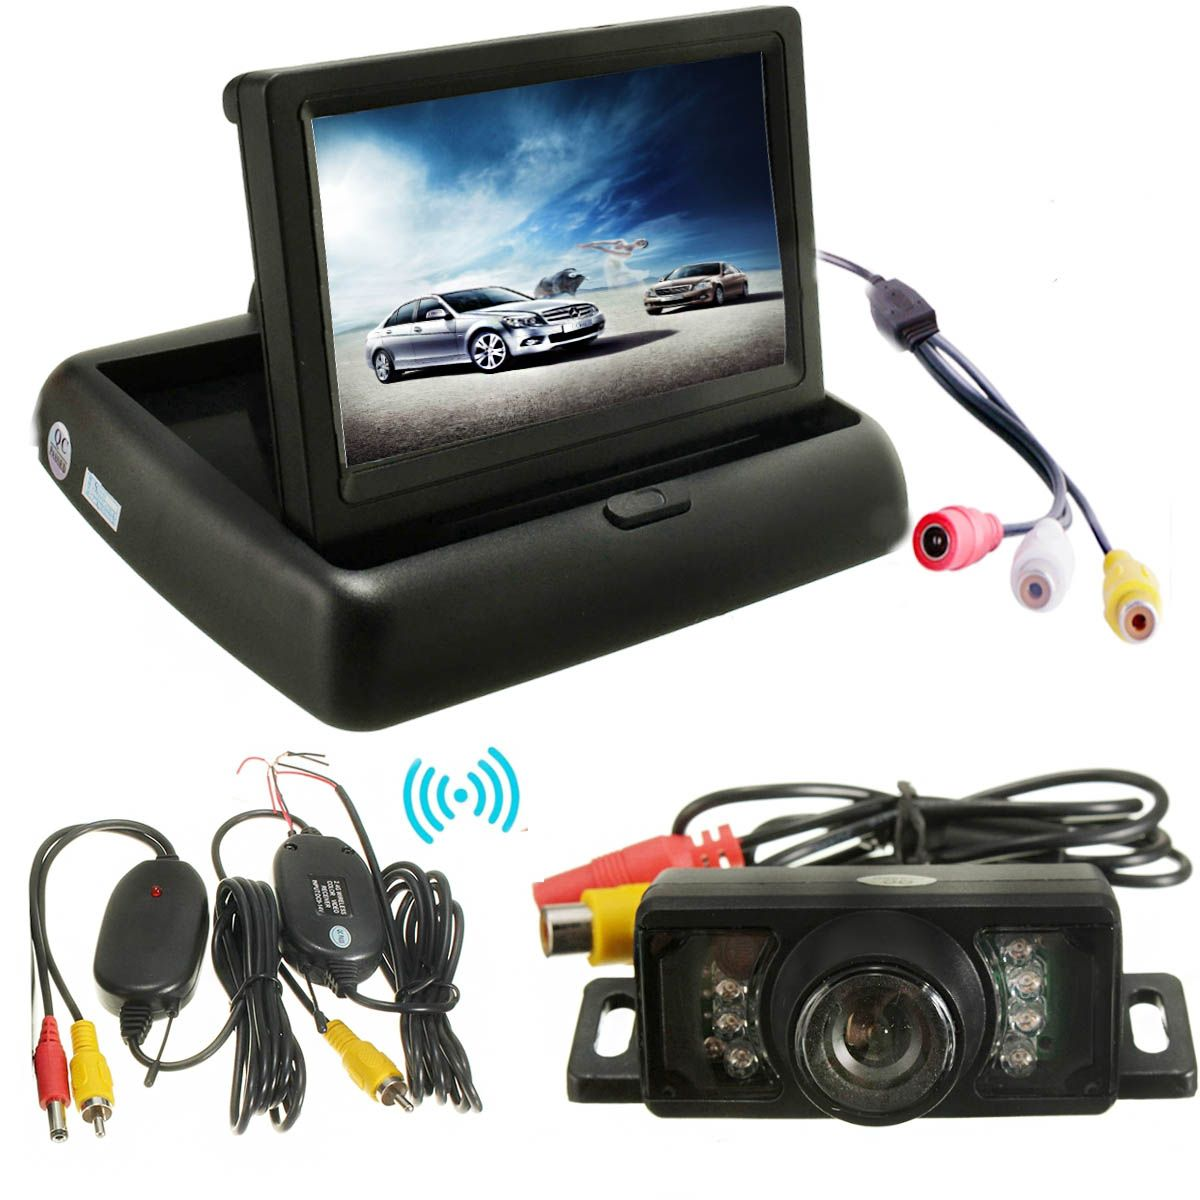 Car Foldable LCD 4.3 Monitor Wireless IR Rearview Parking Reversing Camera Kit 120 Degree Angle Rear View Backup Camera